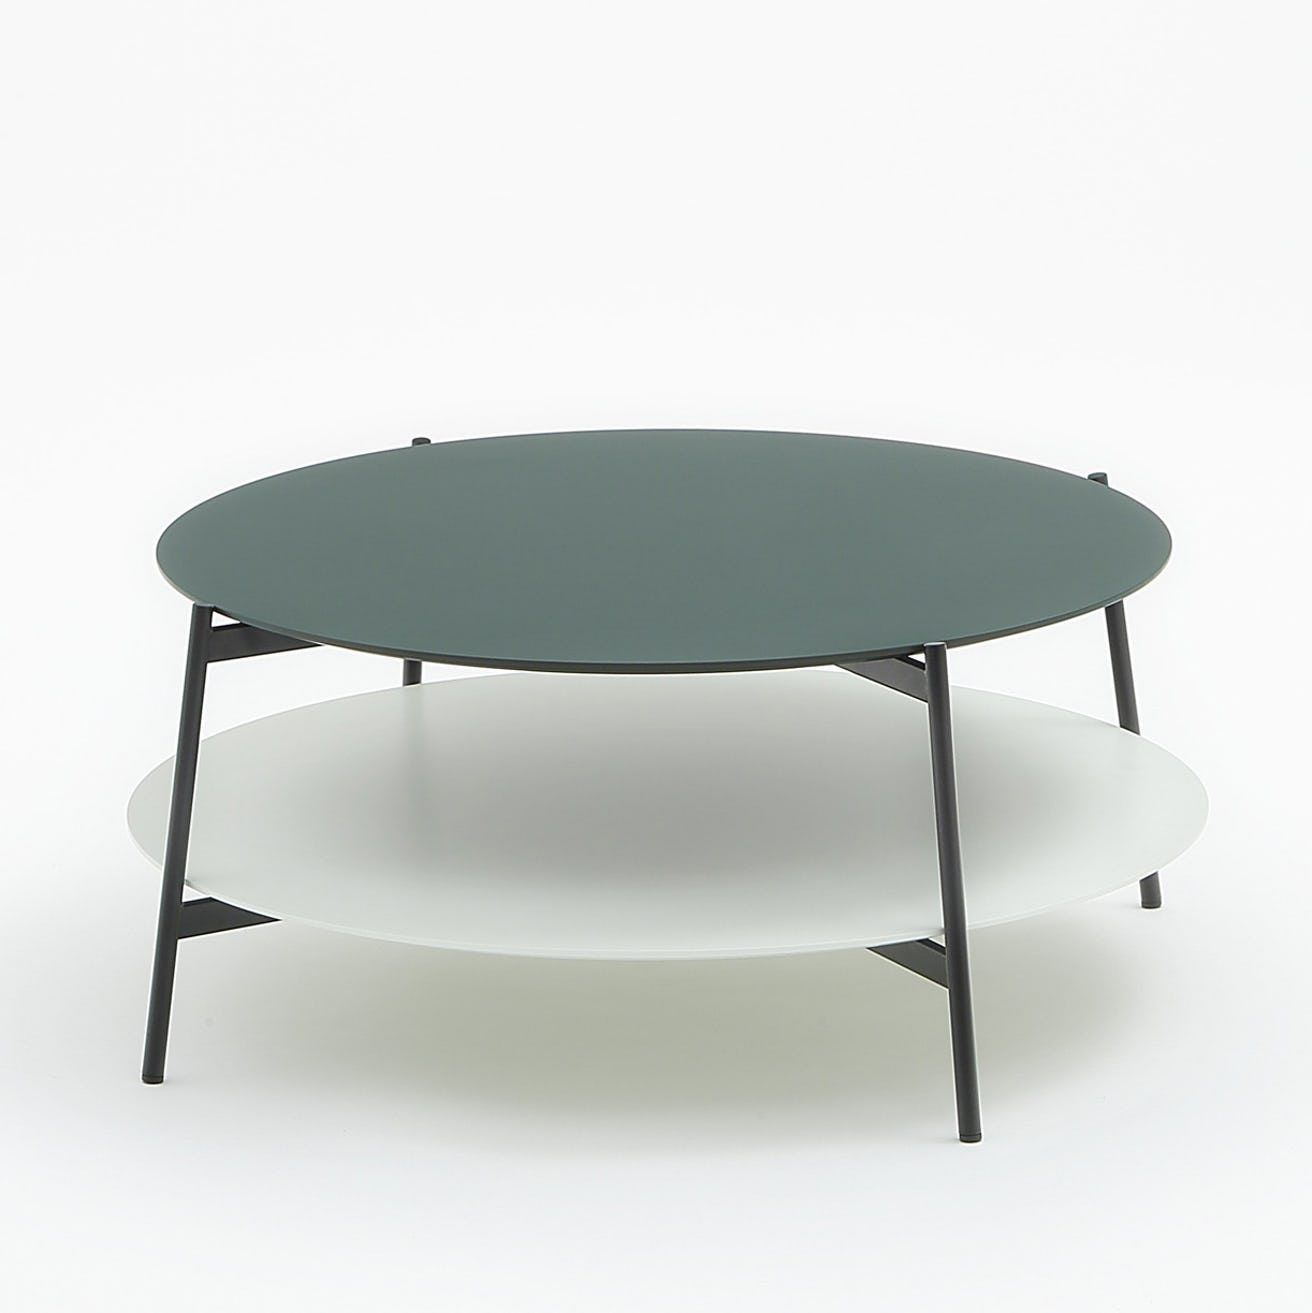 Shika Round Coffee Table By Coedition Now Available At Haute Living Round Coffee Table Furniture Coffee Table [ 1313 x 1312 Pixel ]